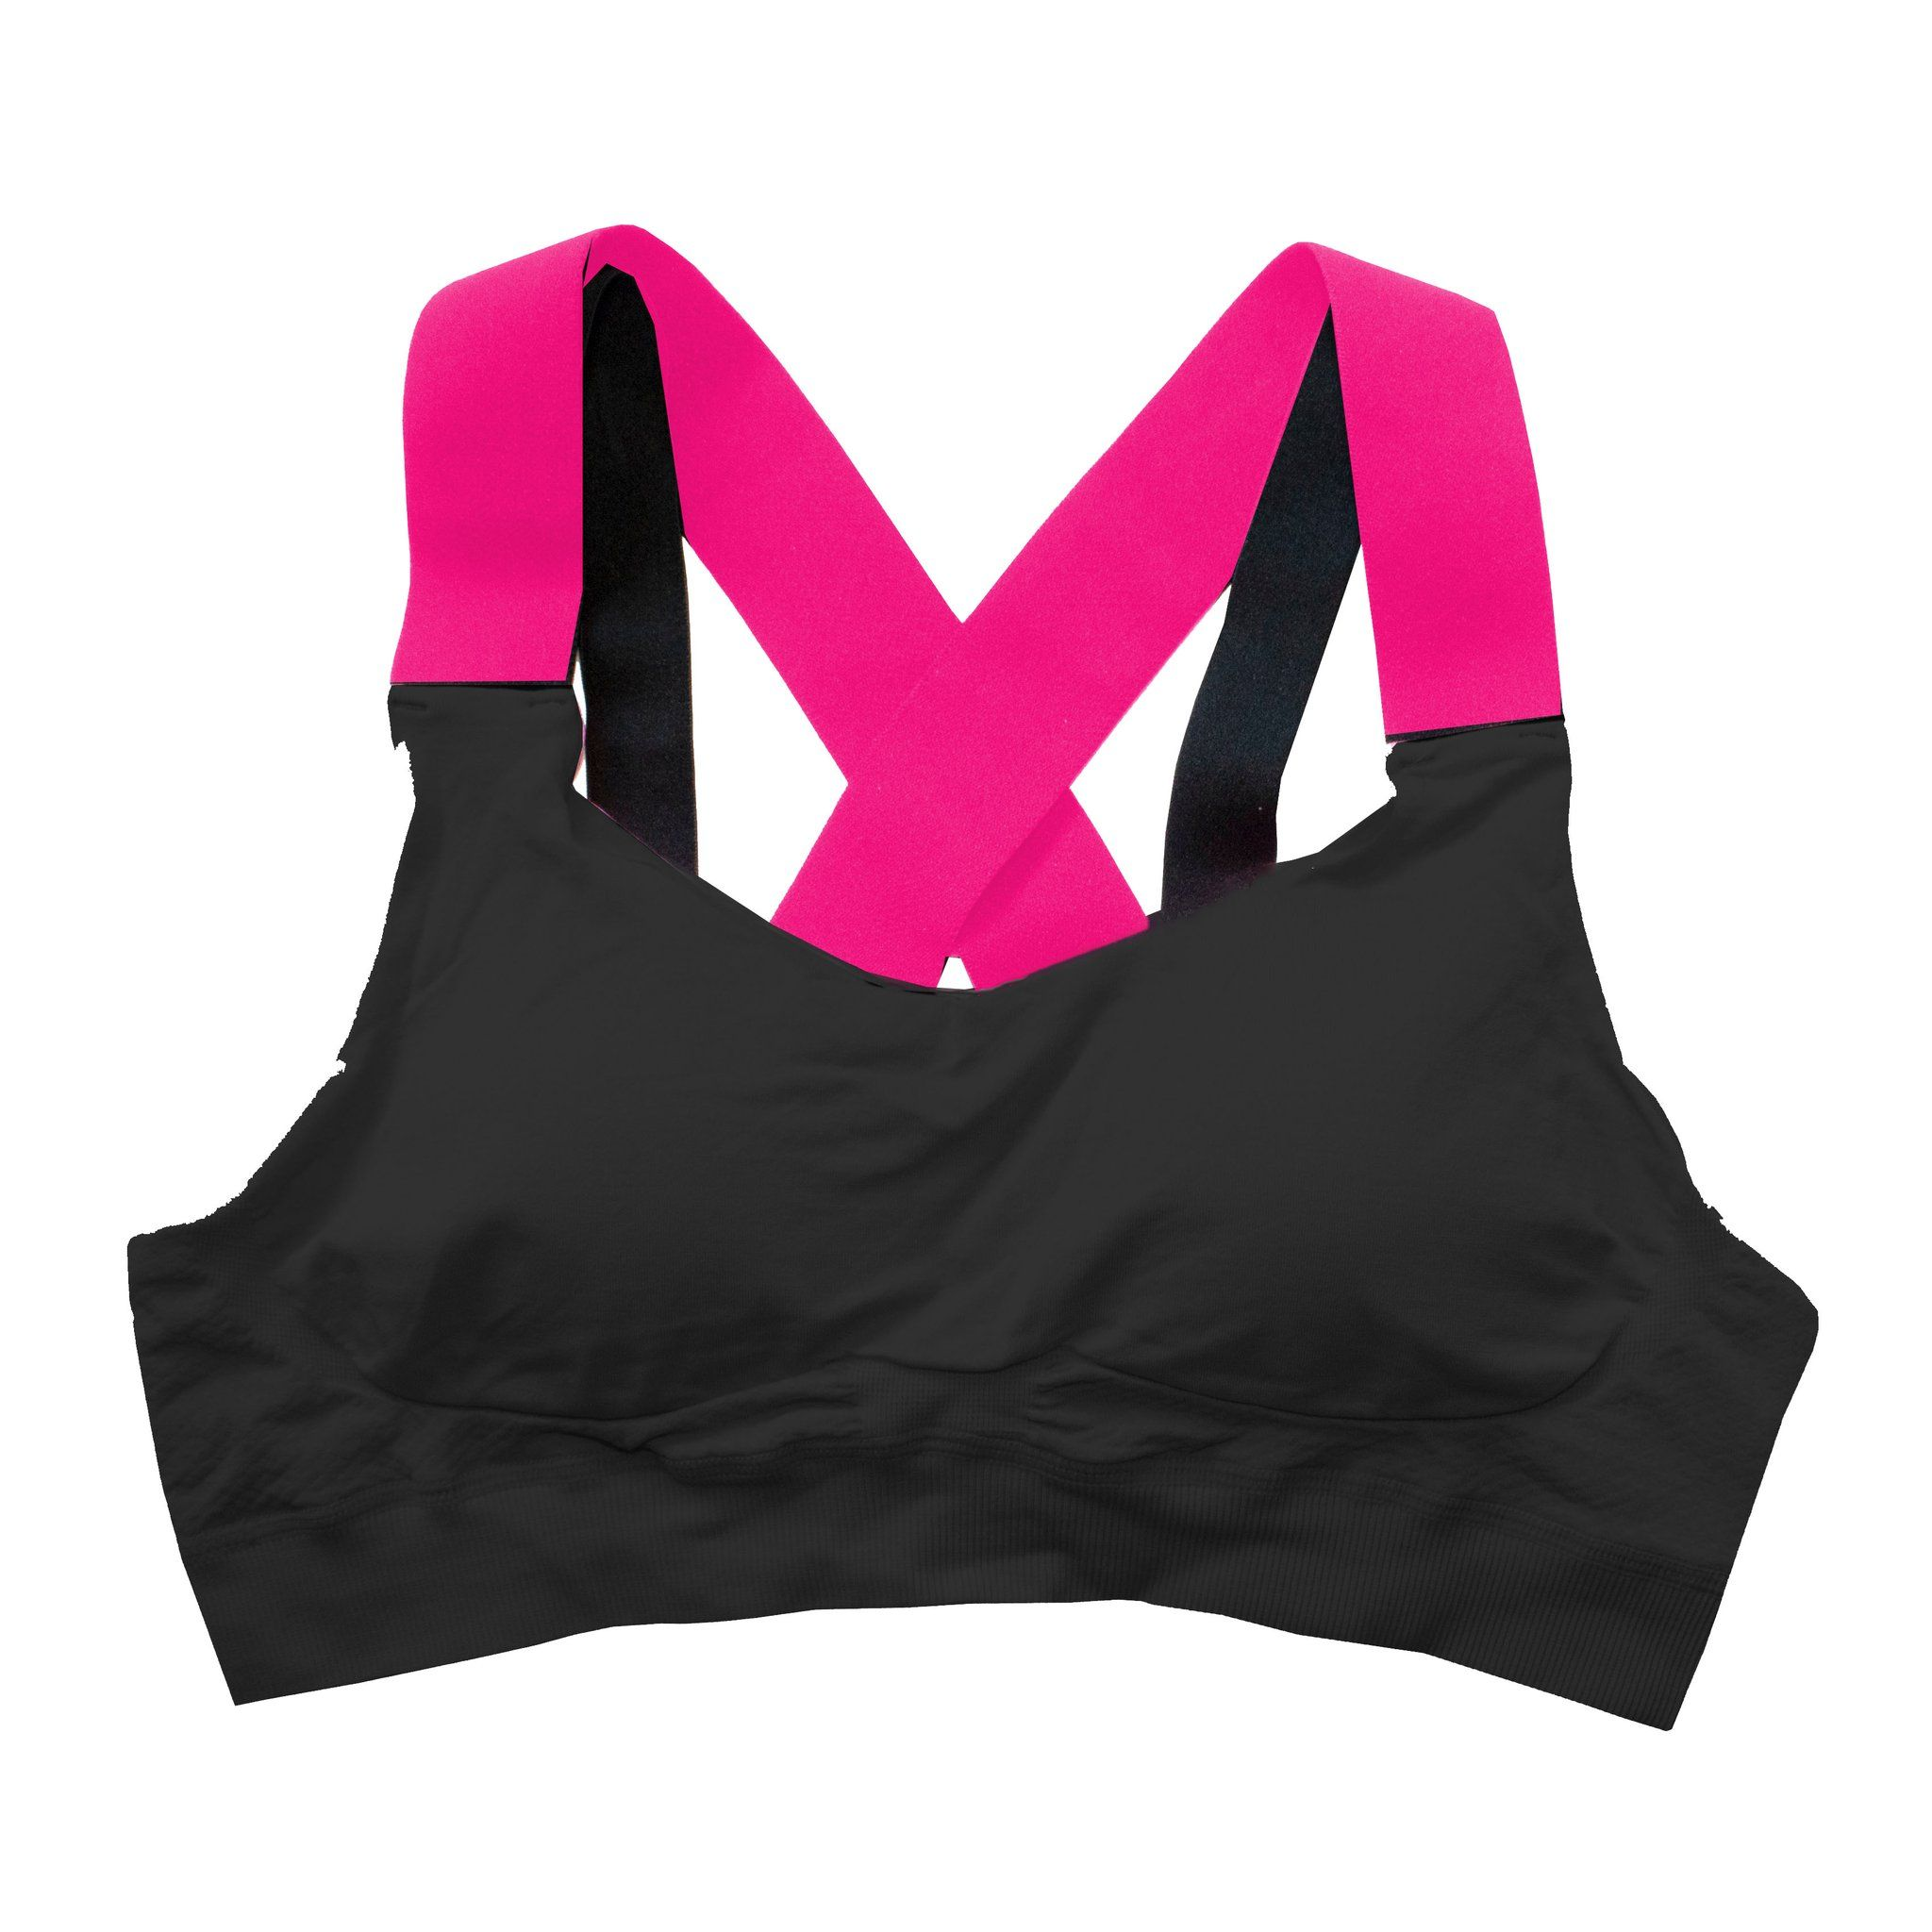 Bonnie's Black Strappy Large Bust Sports Bra in 2020 Hot